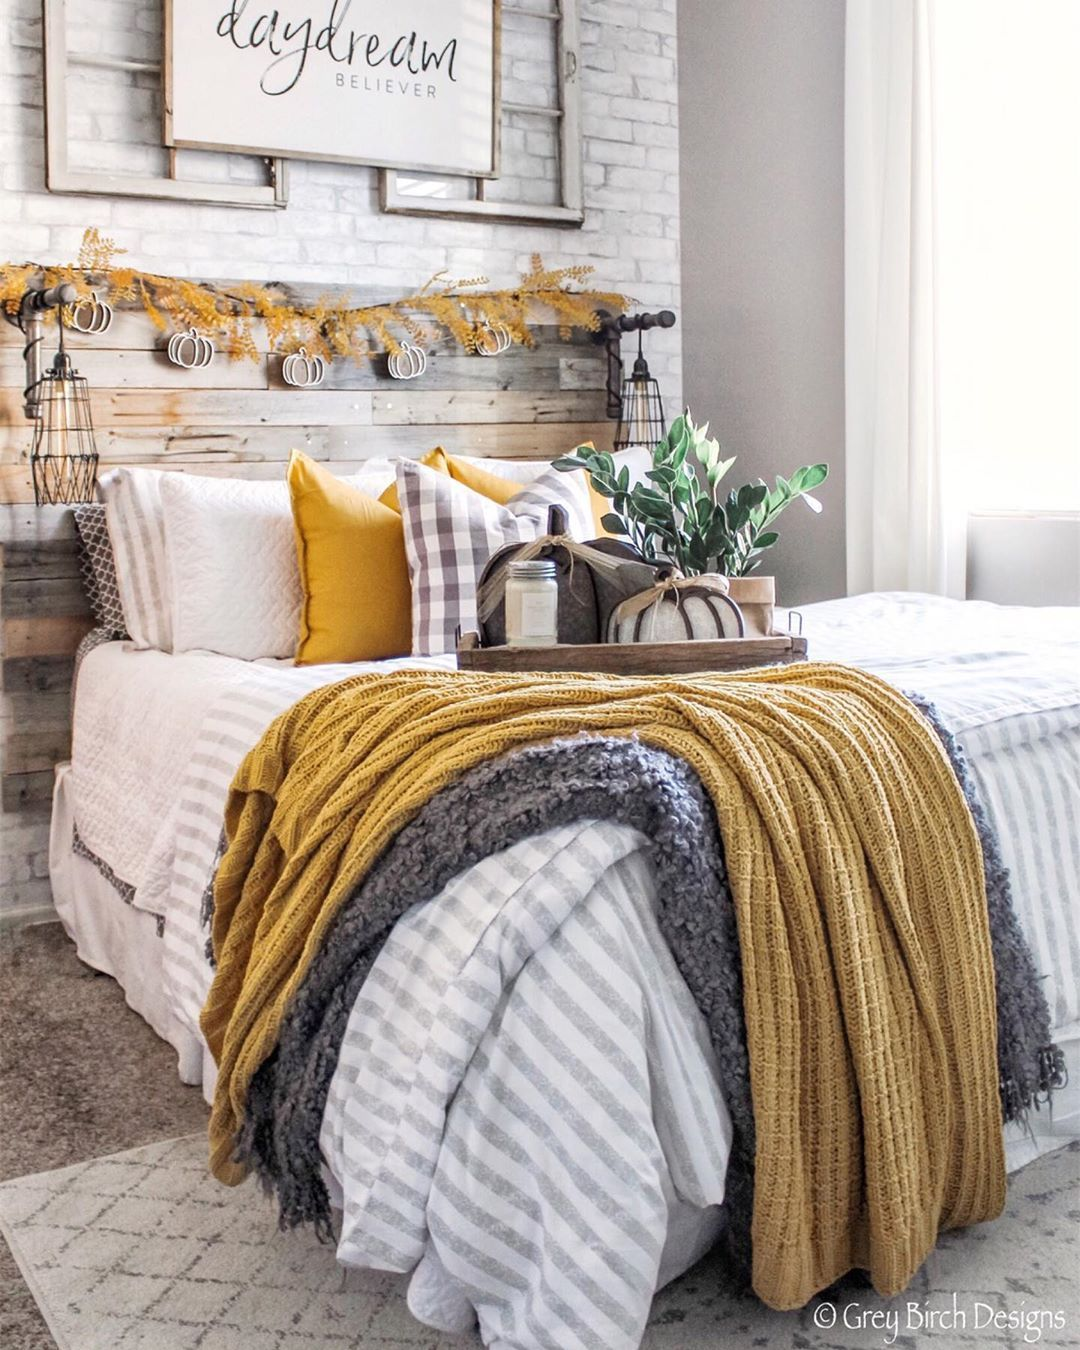 "Modern Farmhouse Designer on Instagram: ""These last few days it has totally felt like Fall, I even needed a jacket yesterday! With the cooler temps it's giving me all the cozy fall…"" -   10 home accessories Bedroom color schemes ideas"